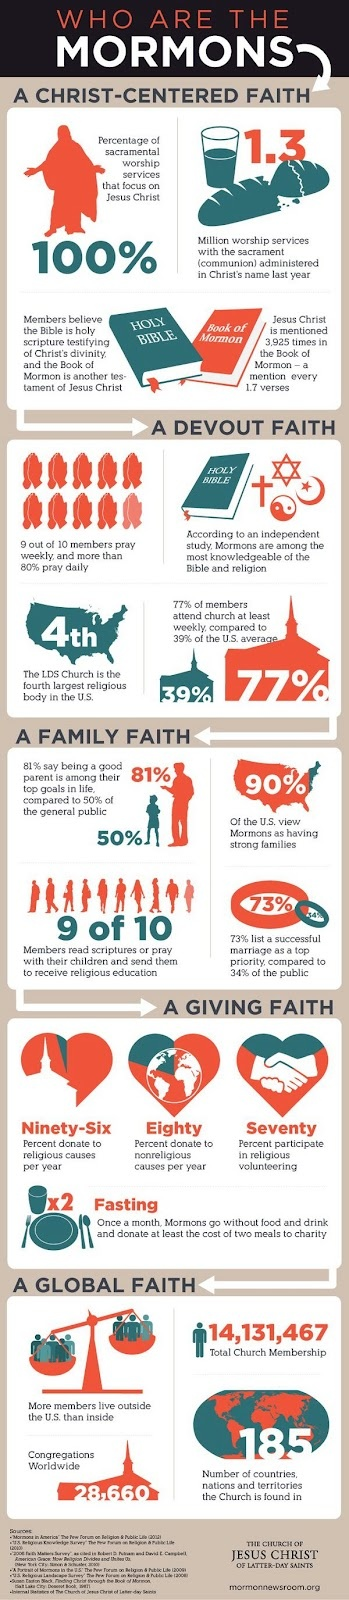 I keep hearing that curiosity about Mormons is peaking right now with Mitt Romney campaigning; this art piece shares some interesting facts that might be surprising to some.  Check it out if you'd like!